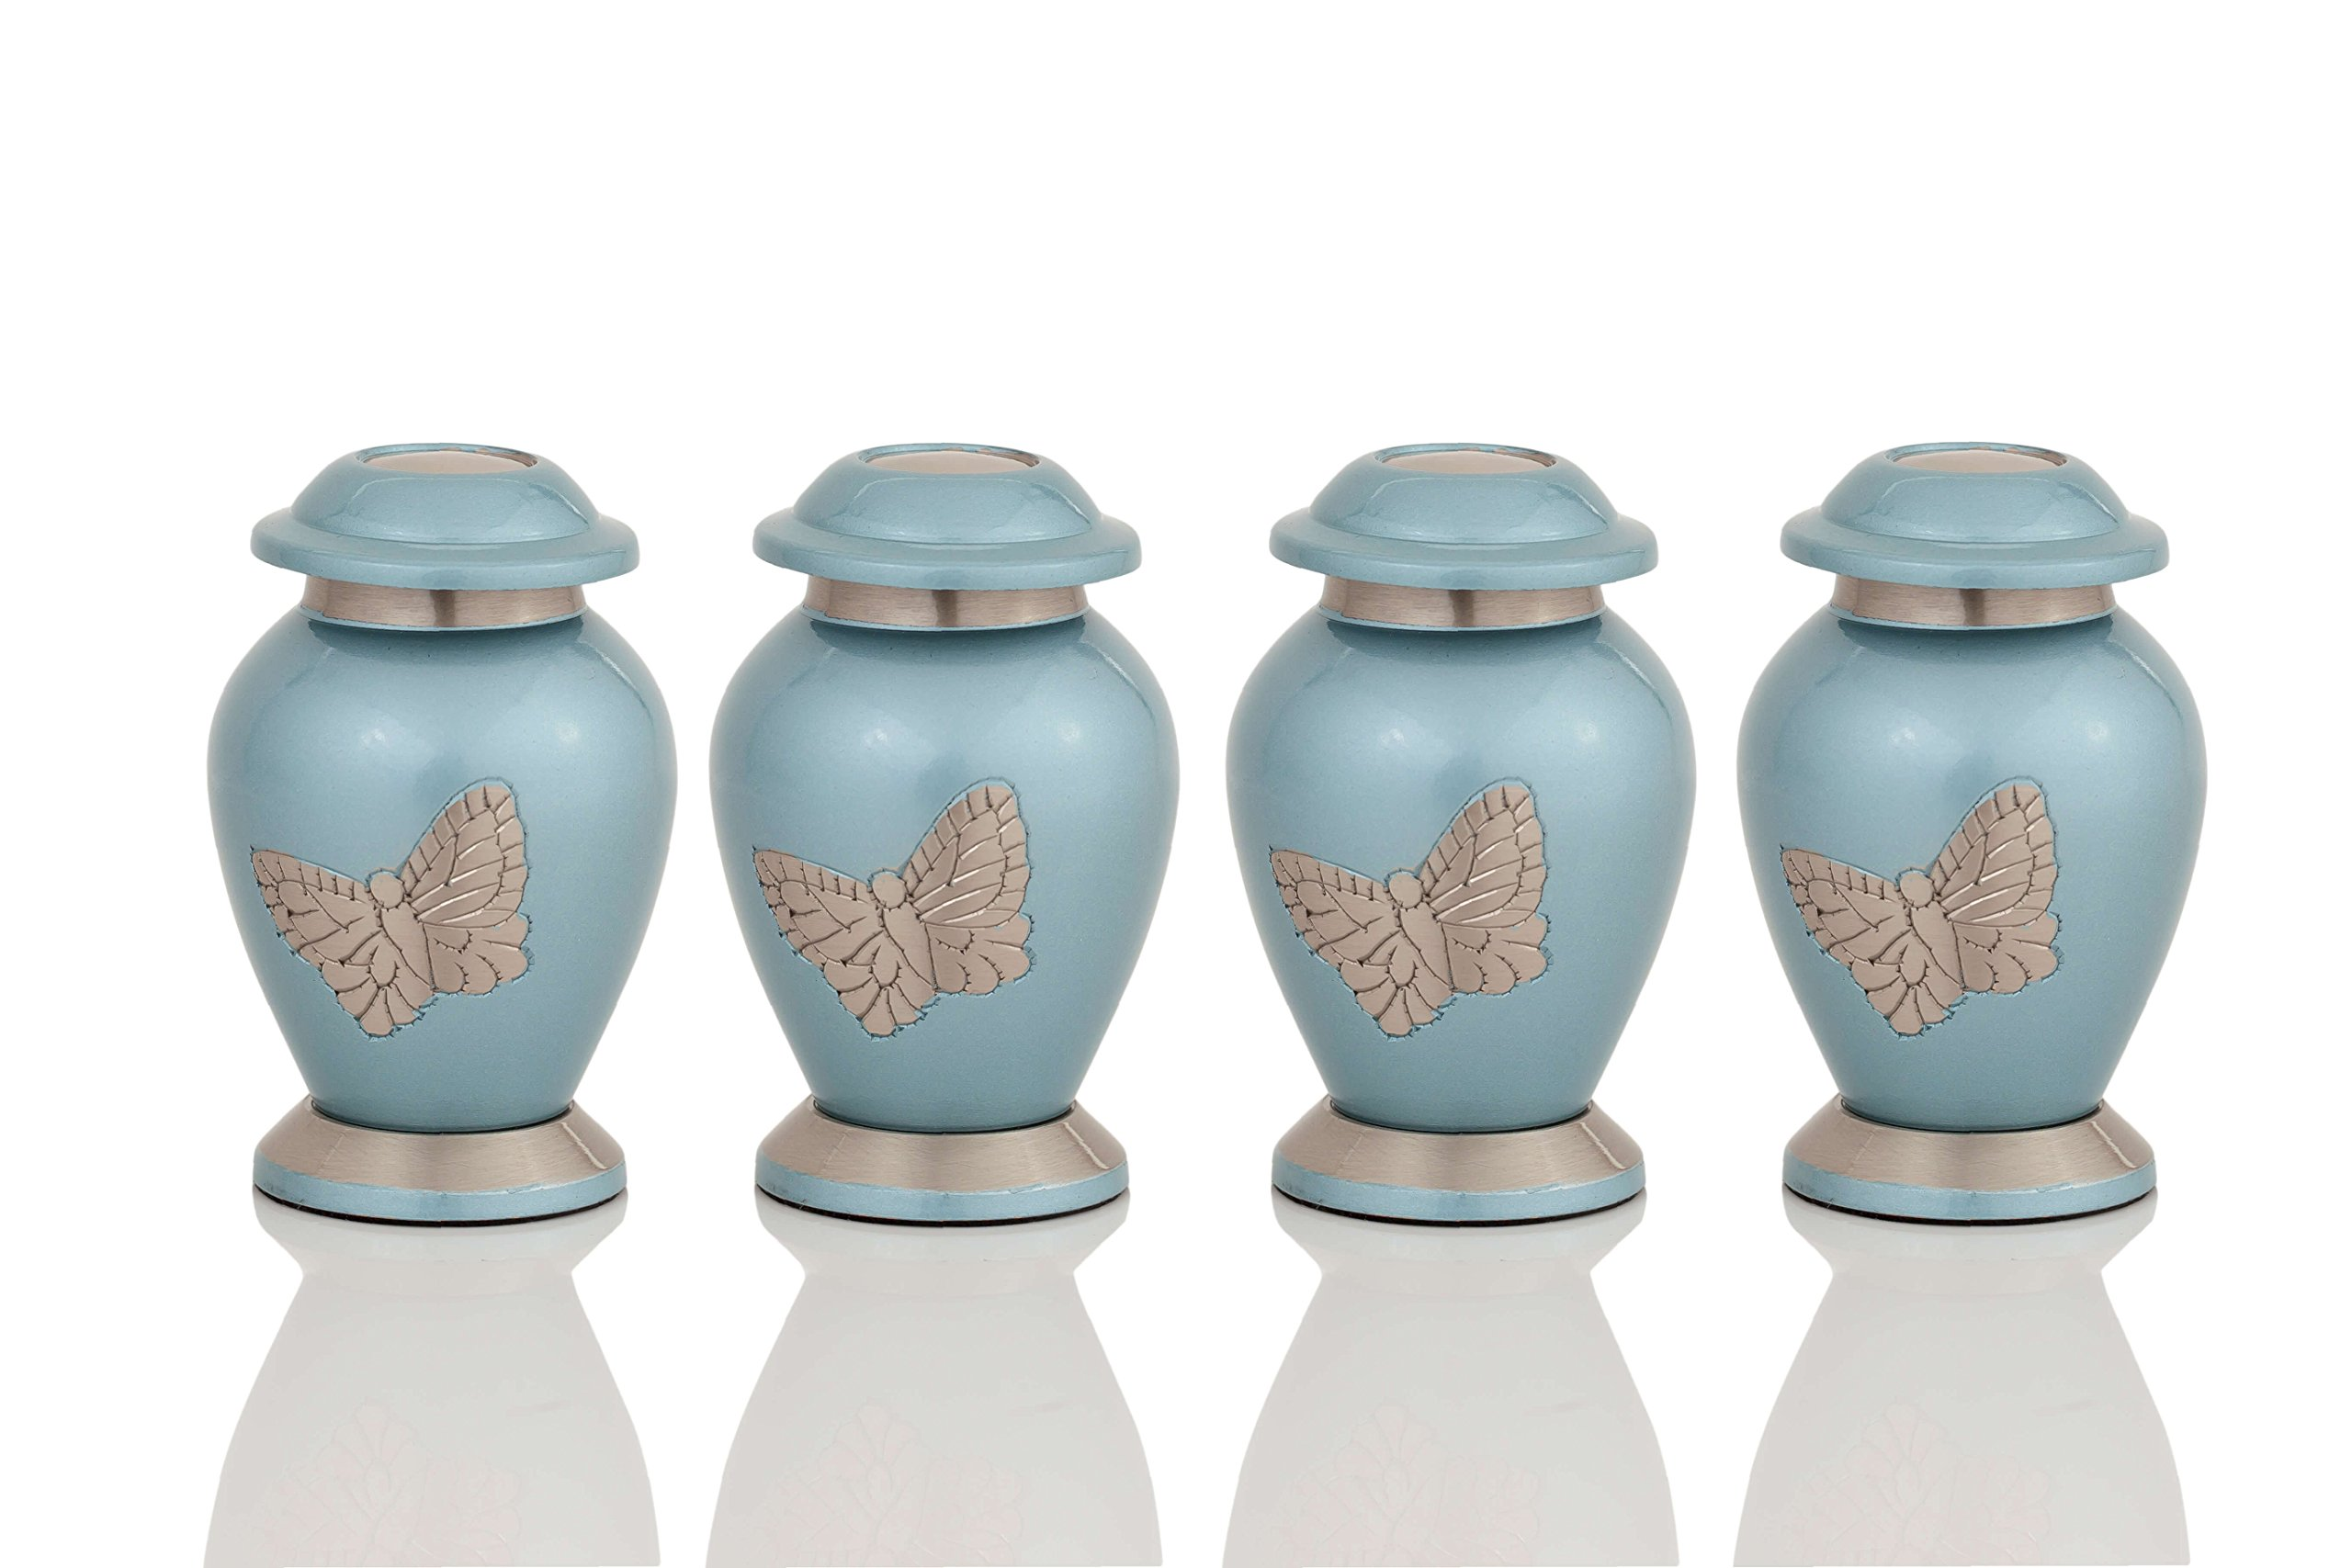 Enshrined Memorials Cremation Urn for Ashes - Apollo Series Affordable Solid Brass Metal Quality Handcrafted for Human Funeral Burial Small Mini Keepsake Set of 4, Teal with Butterflies